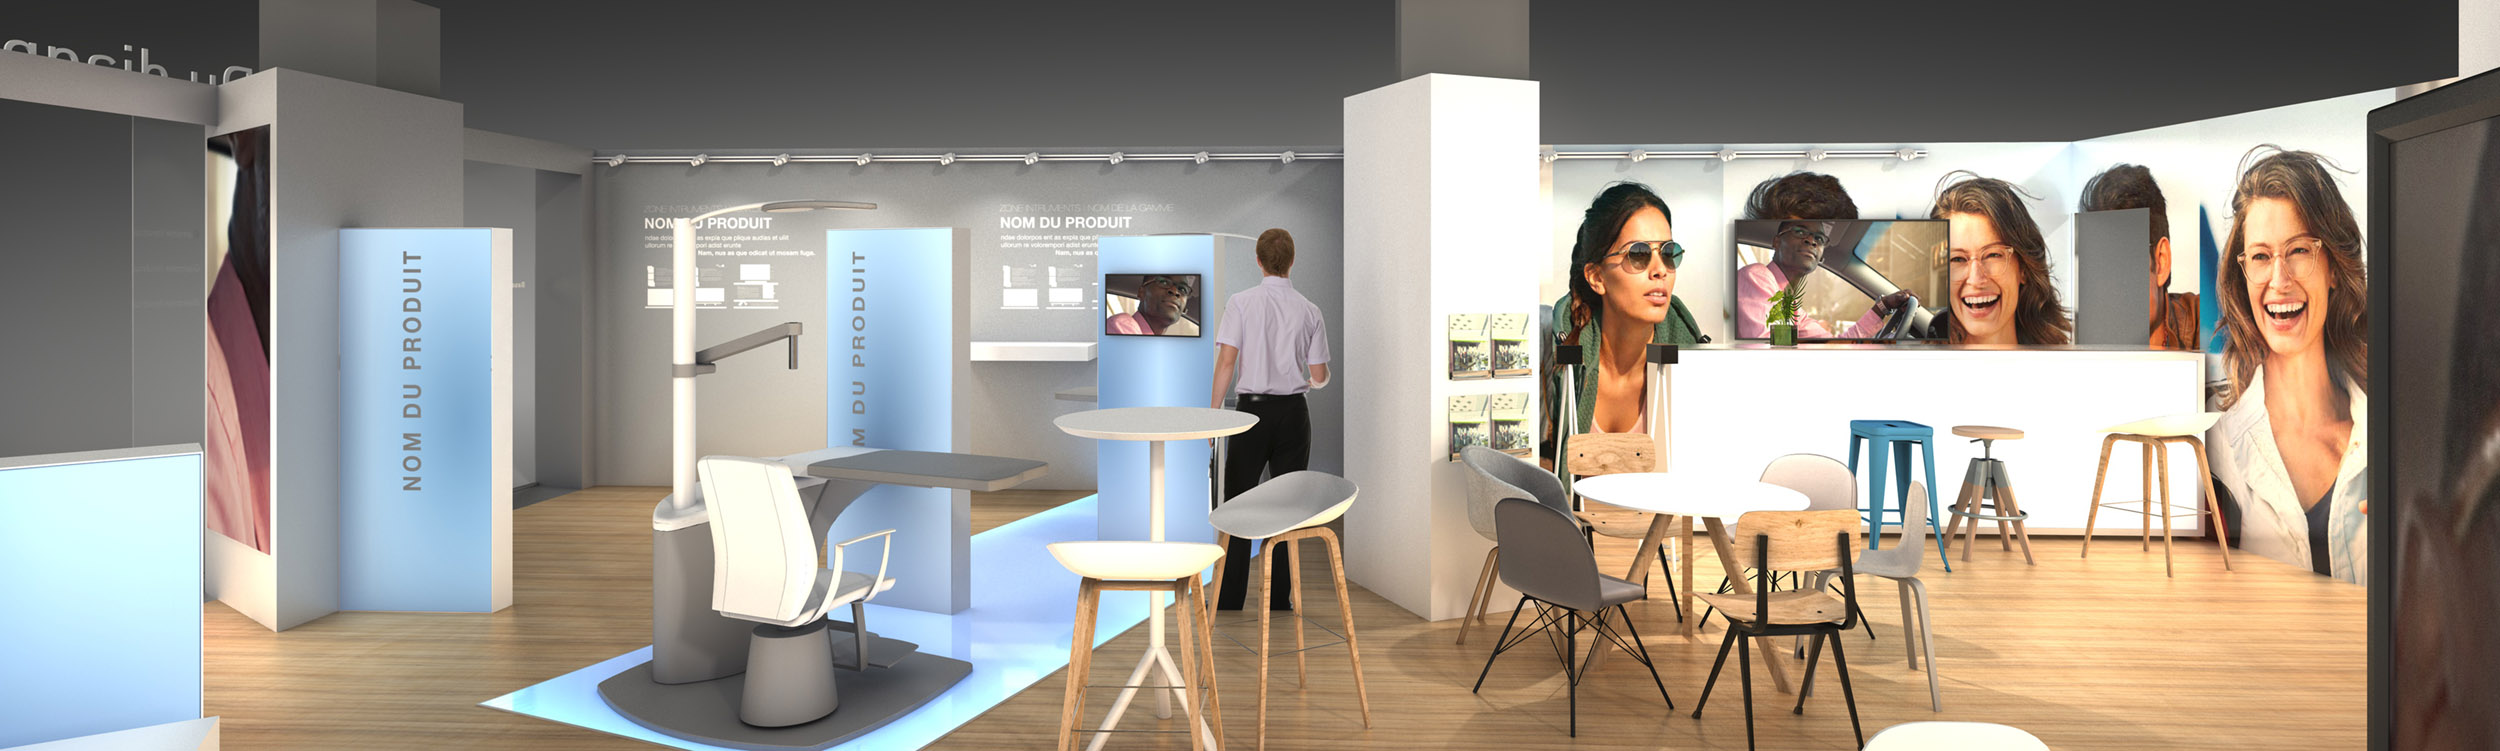 stand booth essilor sfo 20.jpg